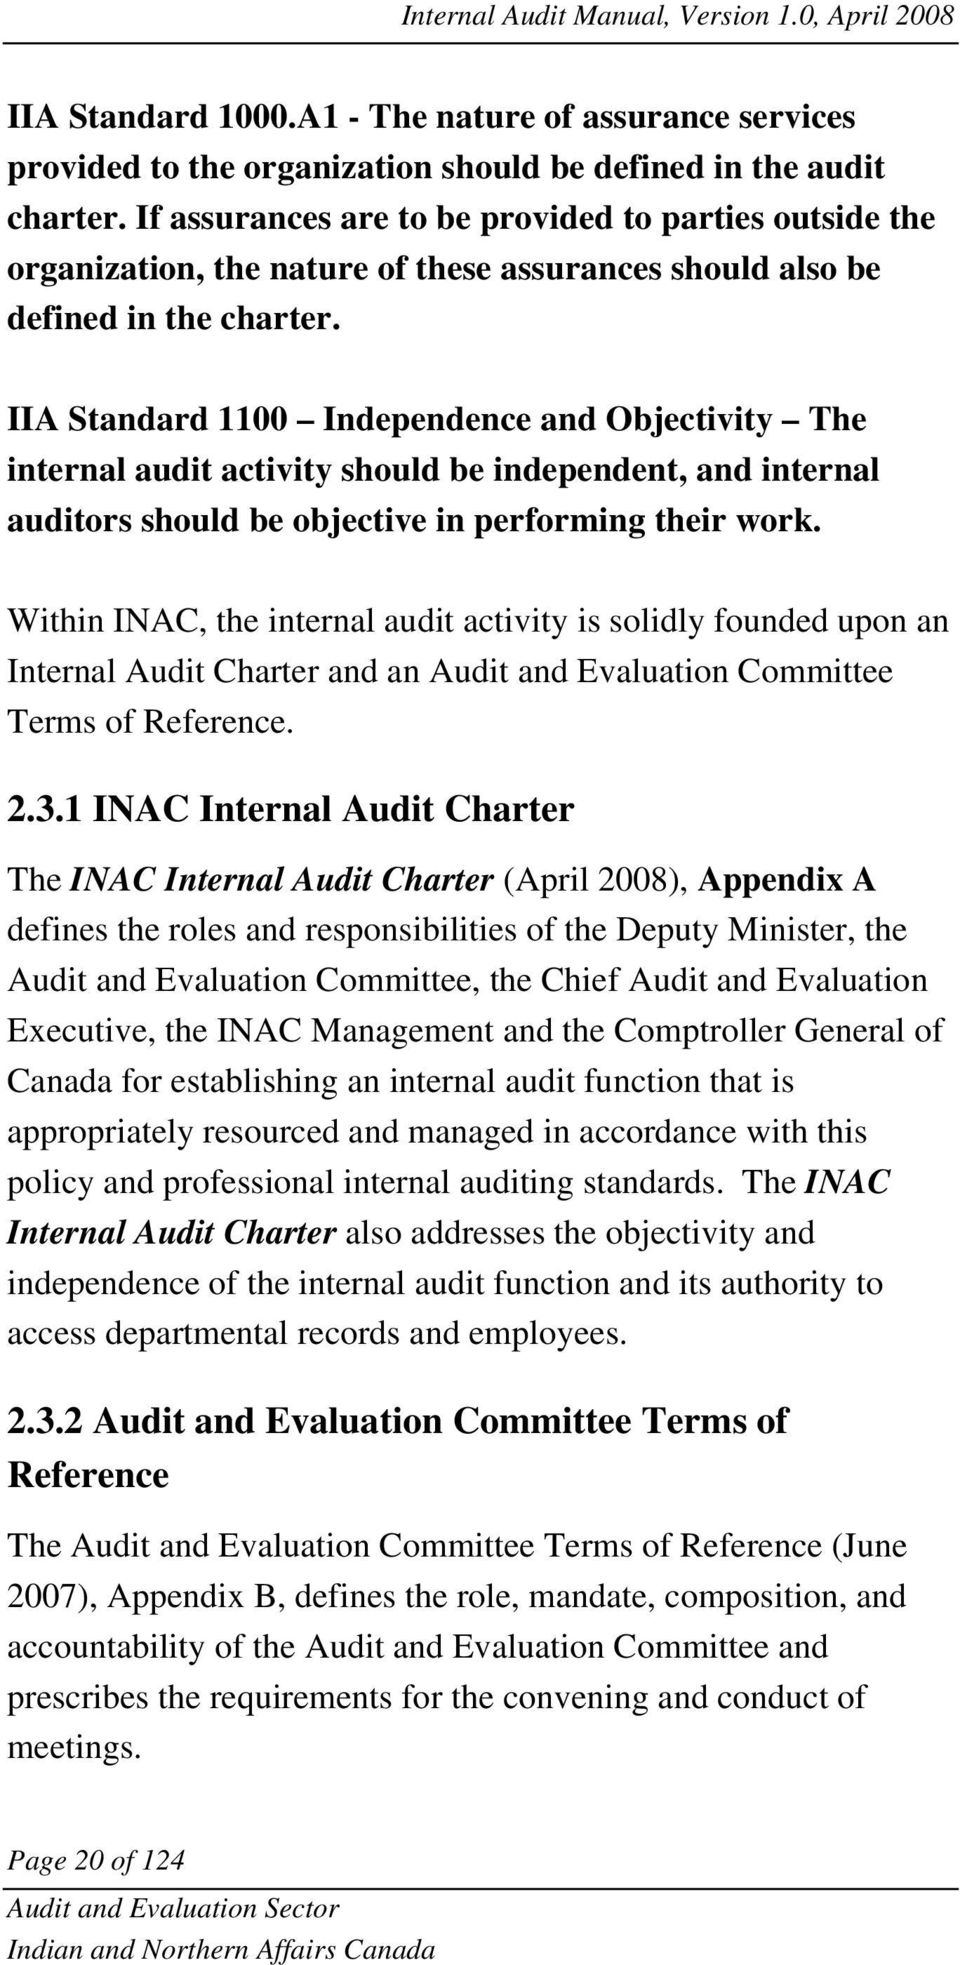 IIA Standard 1100 Independence and Objectivity The internal audit activity should be independent, and internal auditors should be objective in performing their work.